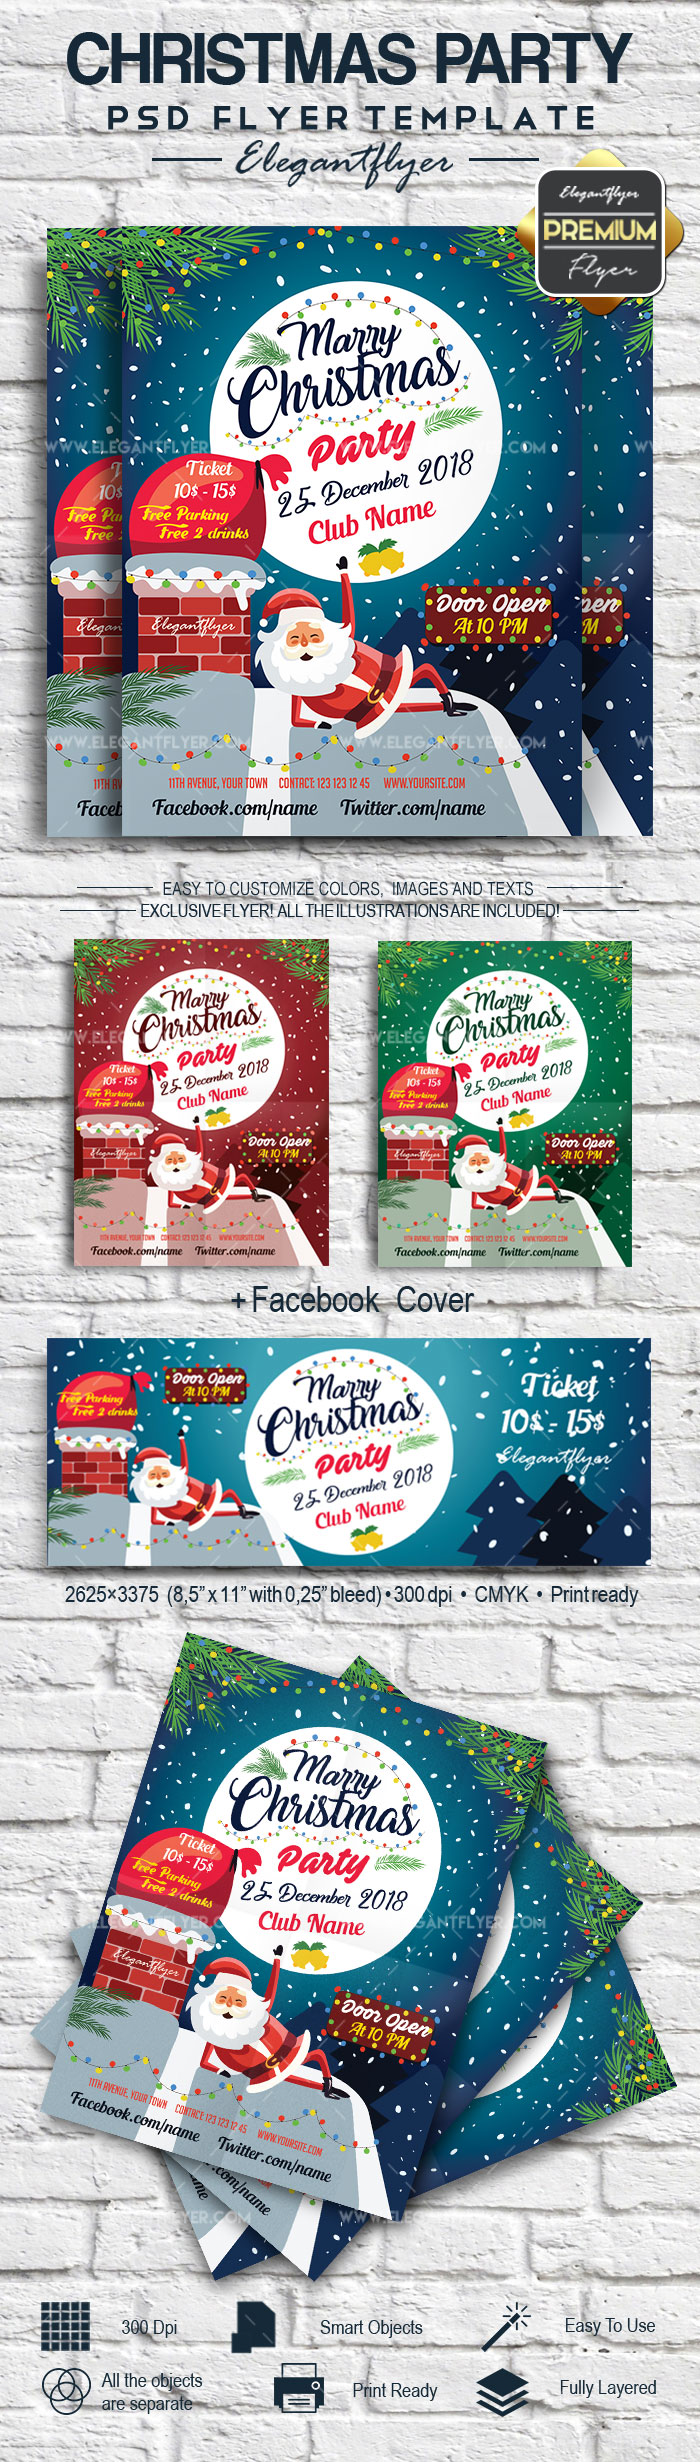 Marry Christmas Party – Flyer PSD Template + Facebook Cover